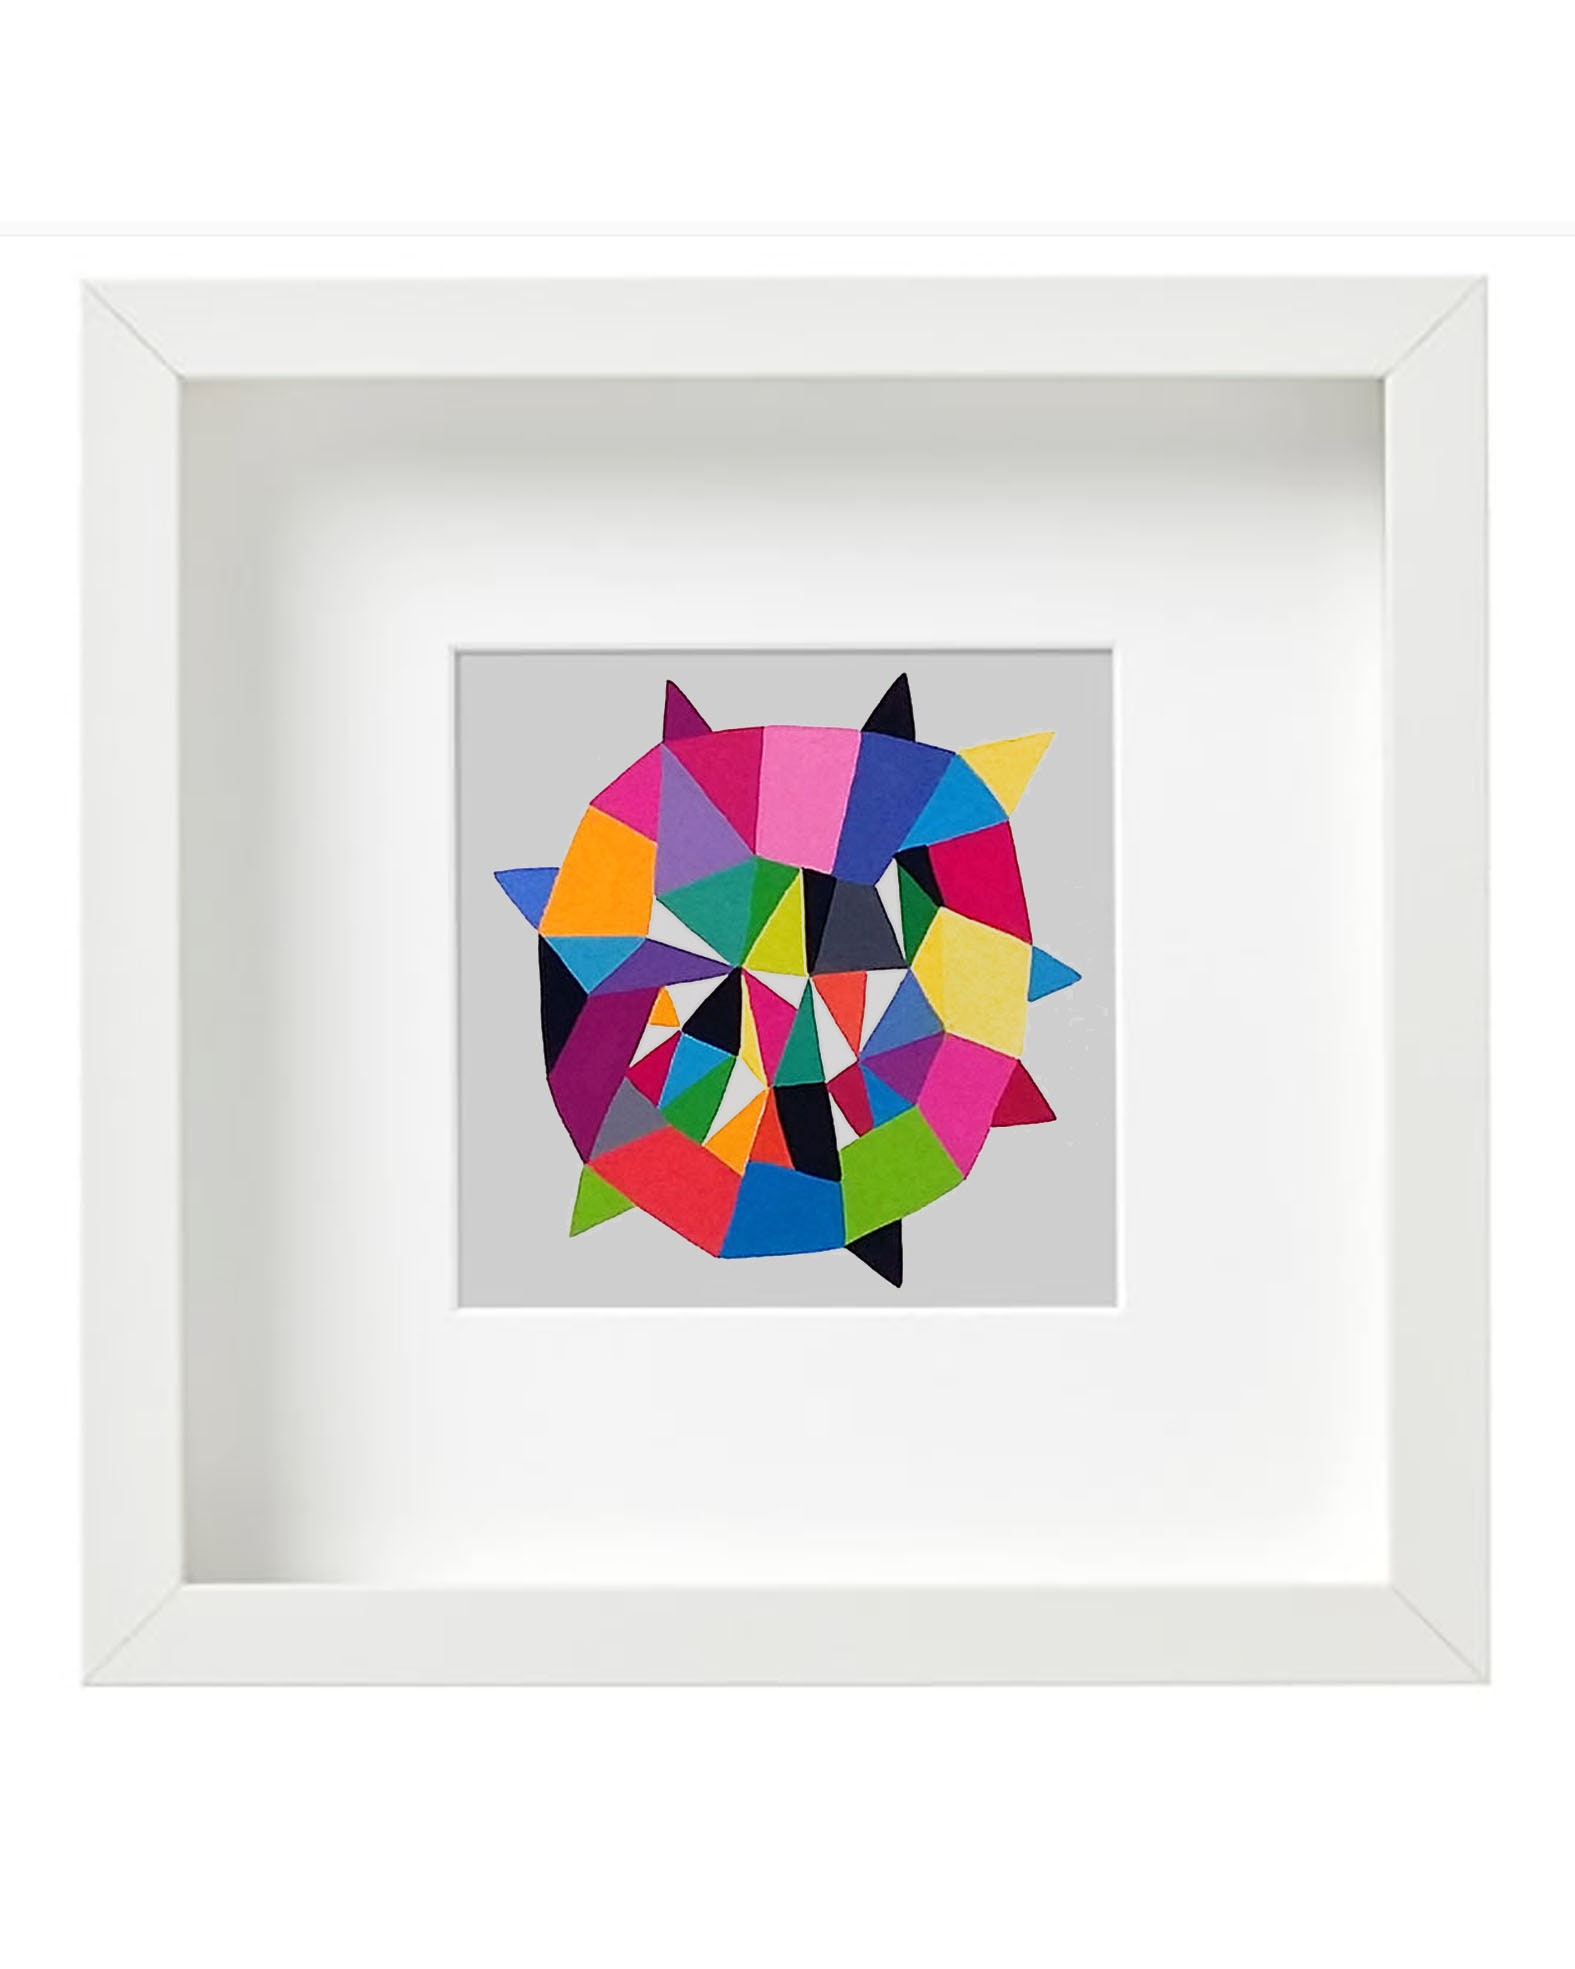 Star_006, small original geometric illustration - product images  of